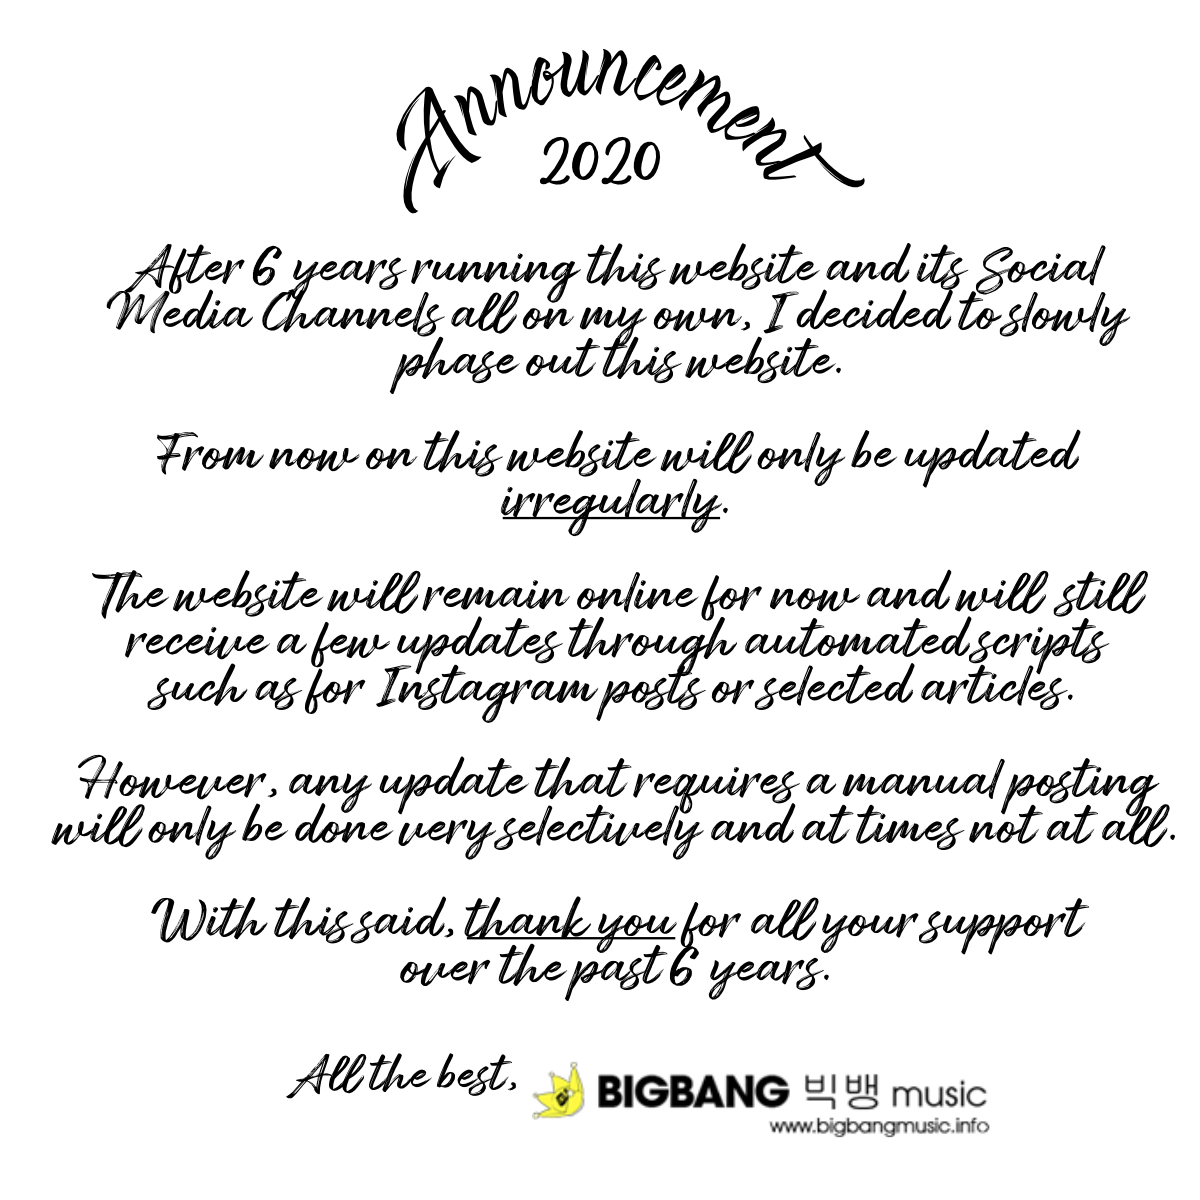 BIGBANGmusic 2020 Announcement